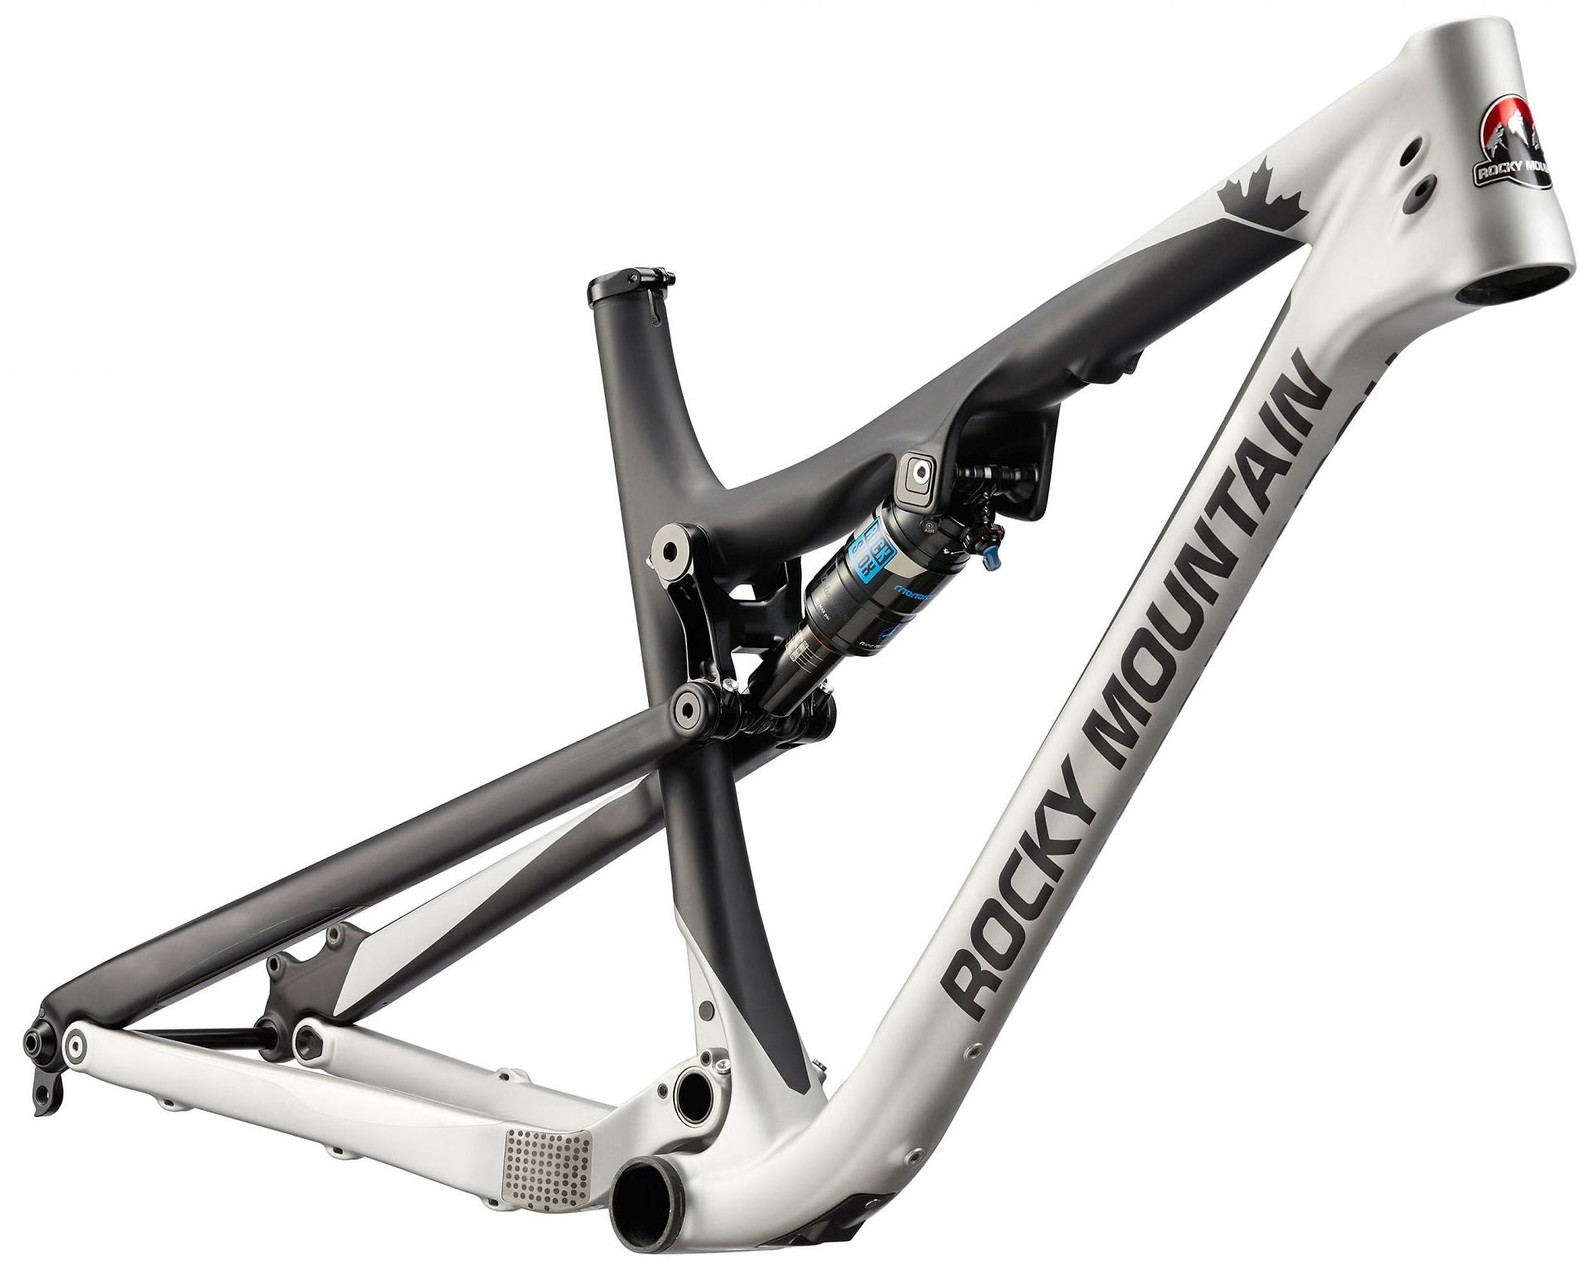 Rocky Mountain Thunderbolt MSL BC Edition Frame - Reviews ...